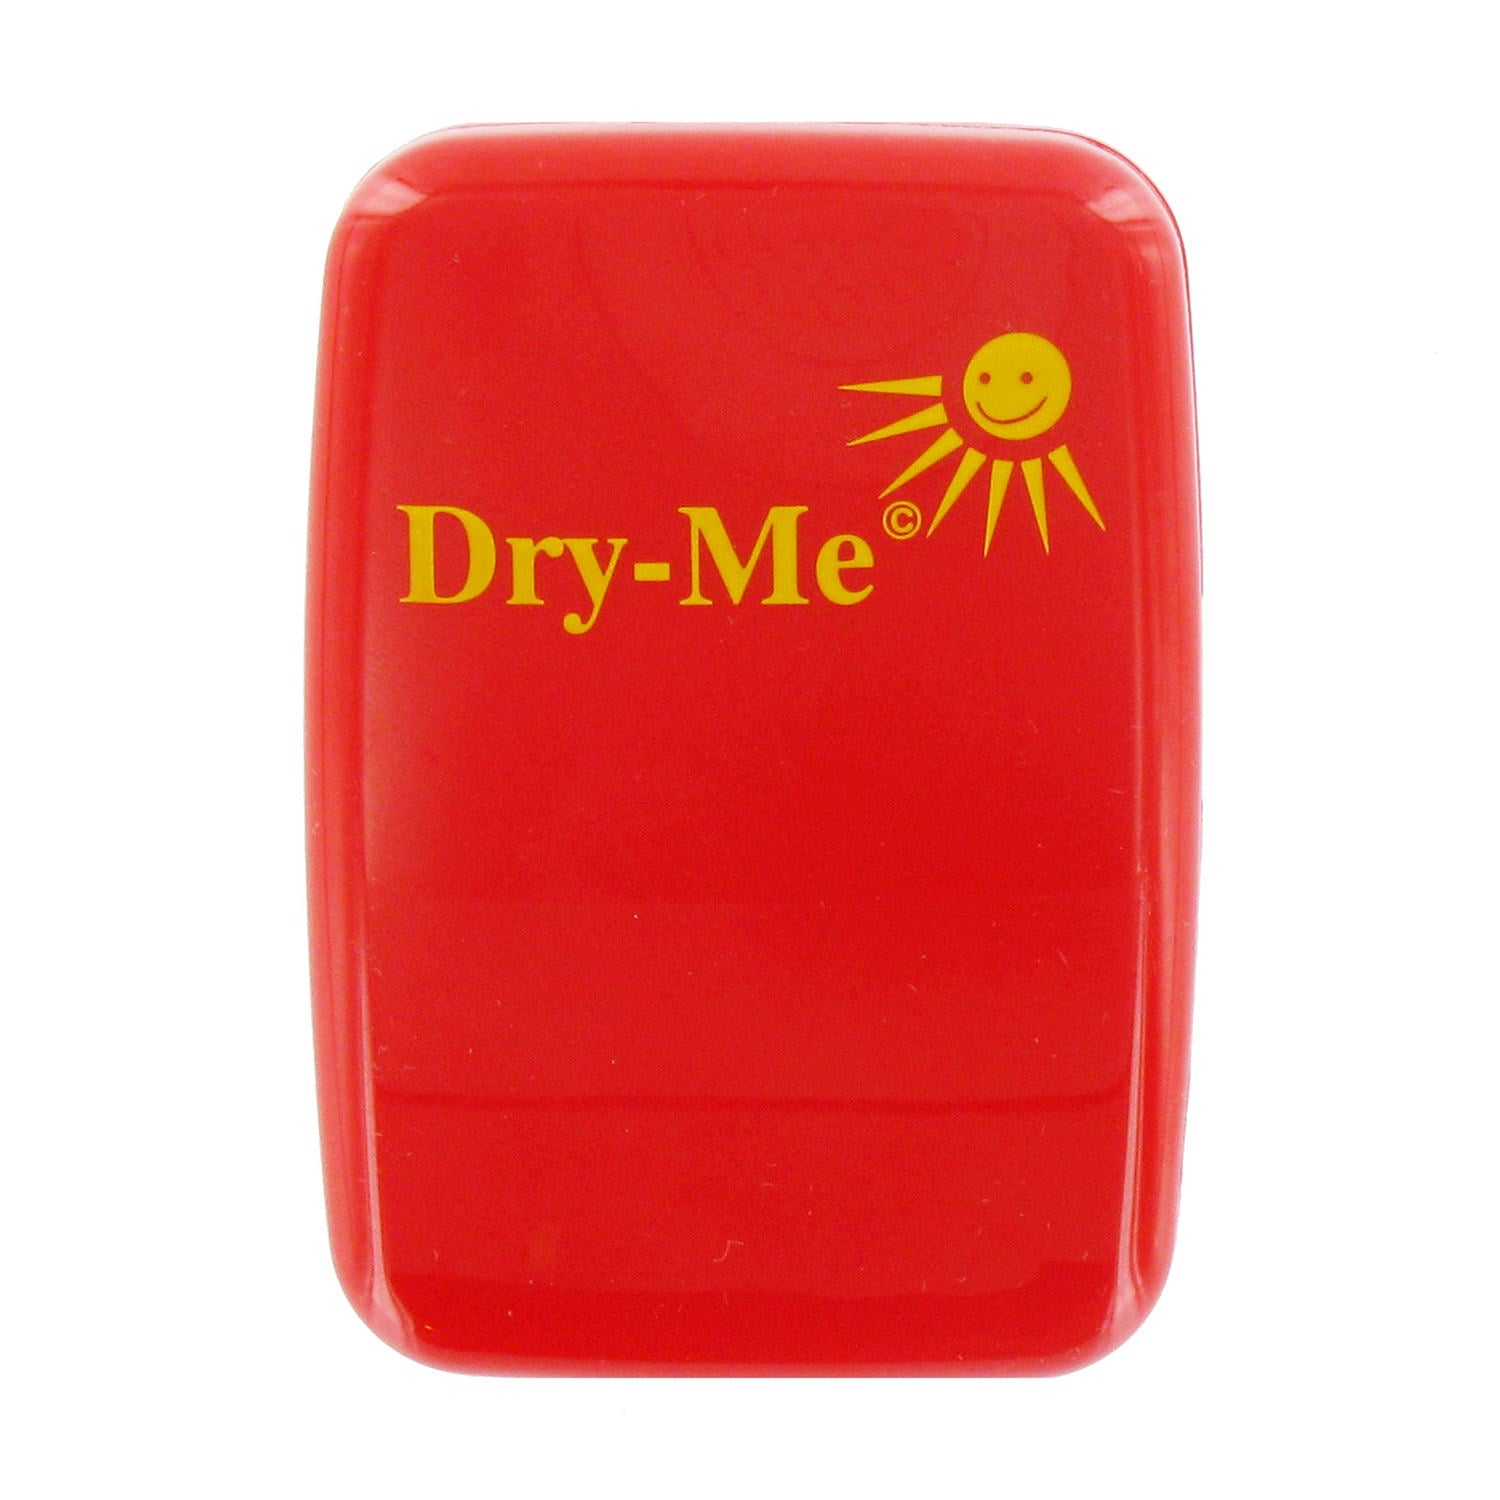 Dry-Me Bedwetting Alarm - Red - (Used, Reconditioned) - Main Alarm Unit Only